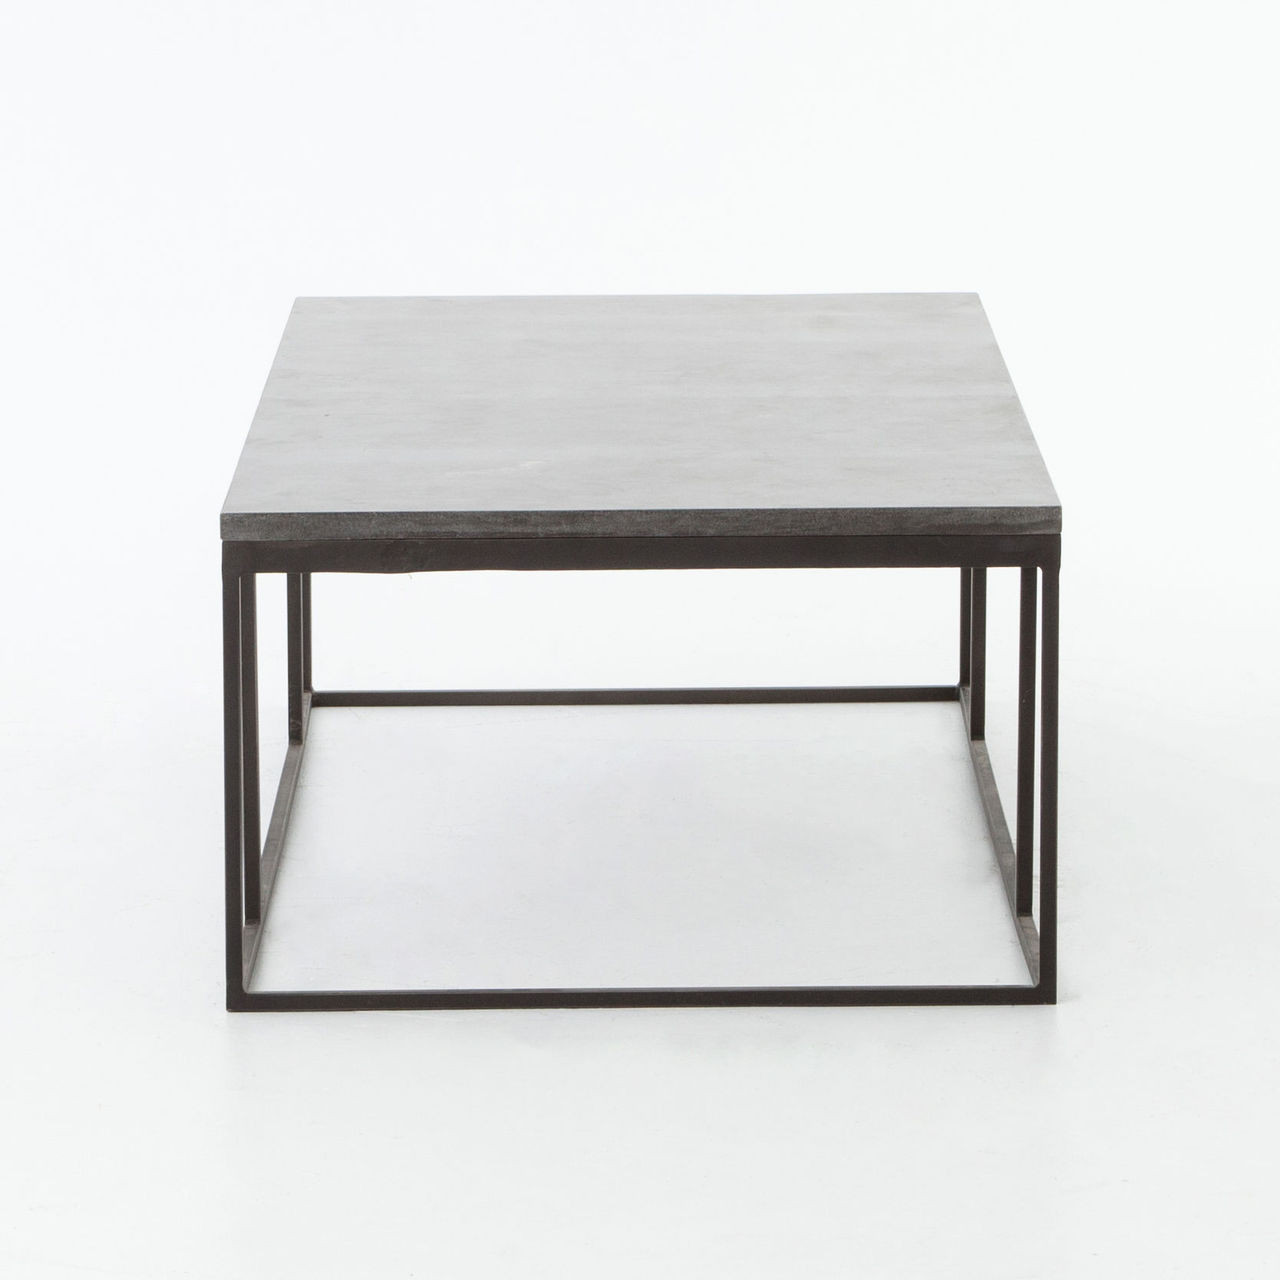 ... French Industrial Iron + Bluestone Top Coffee Tables ... - French Industrial Iron + Bluestone Top Coffee Table Zin Home